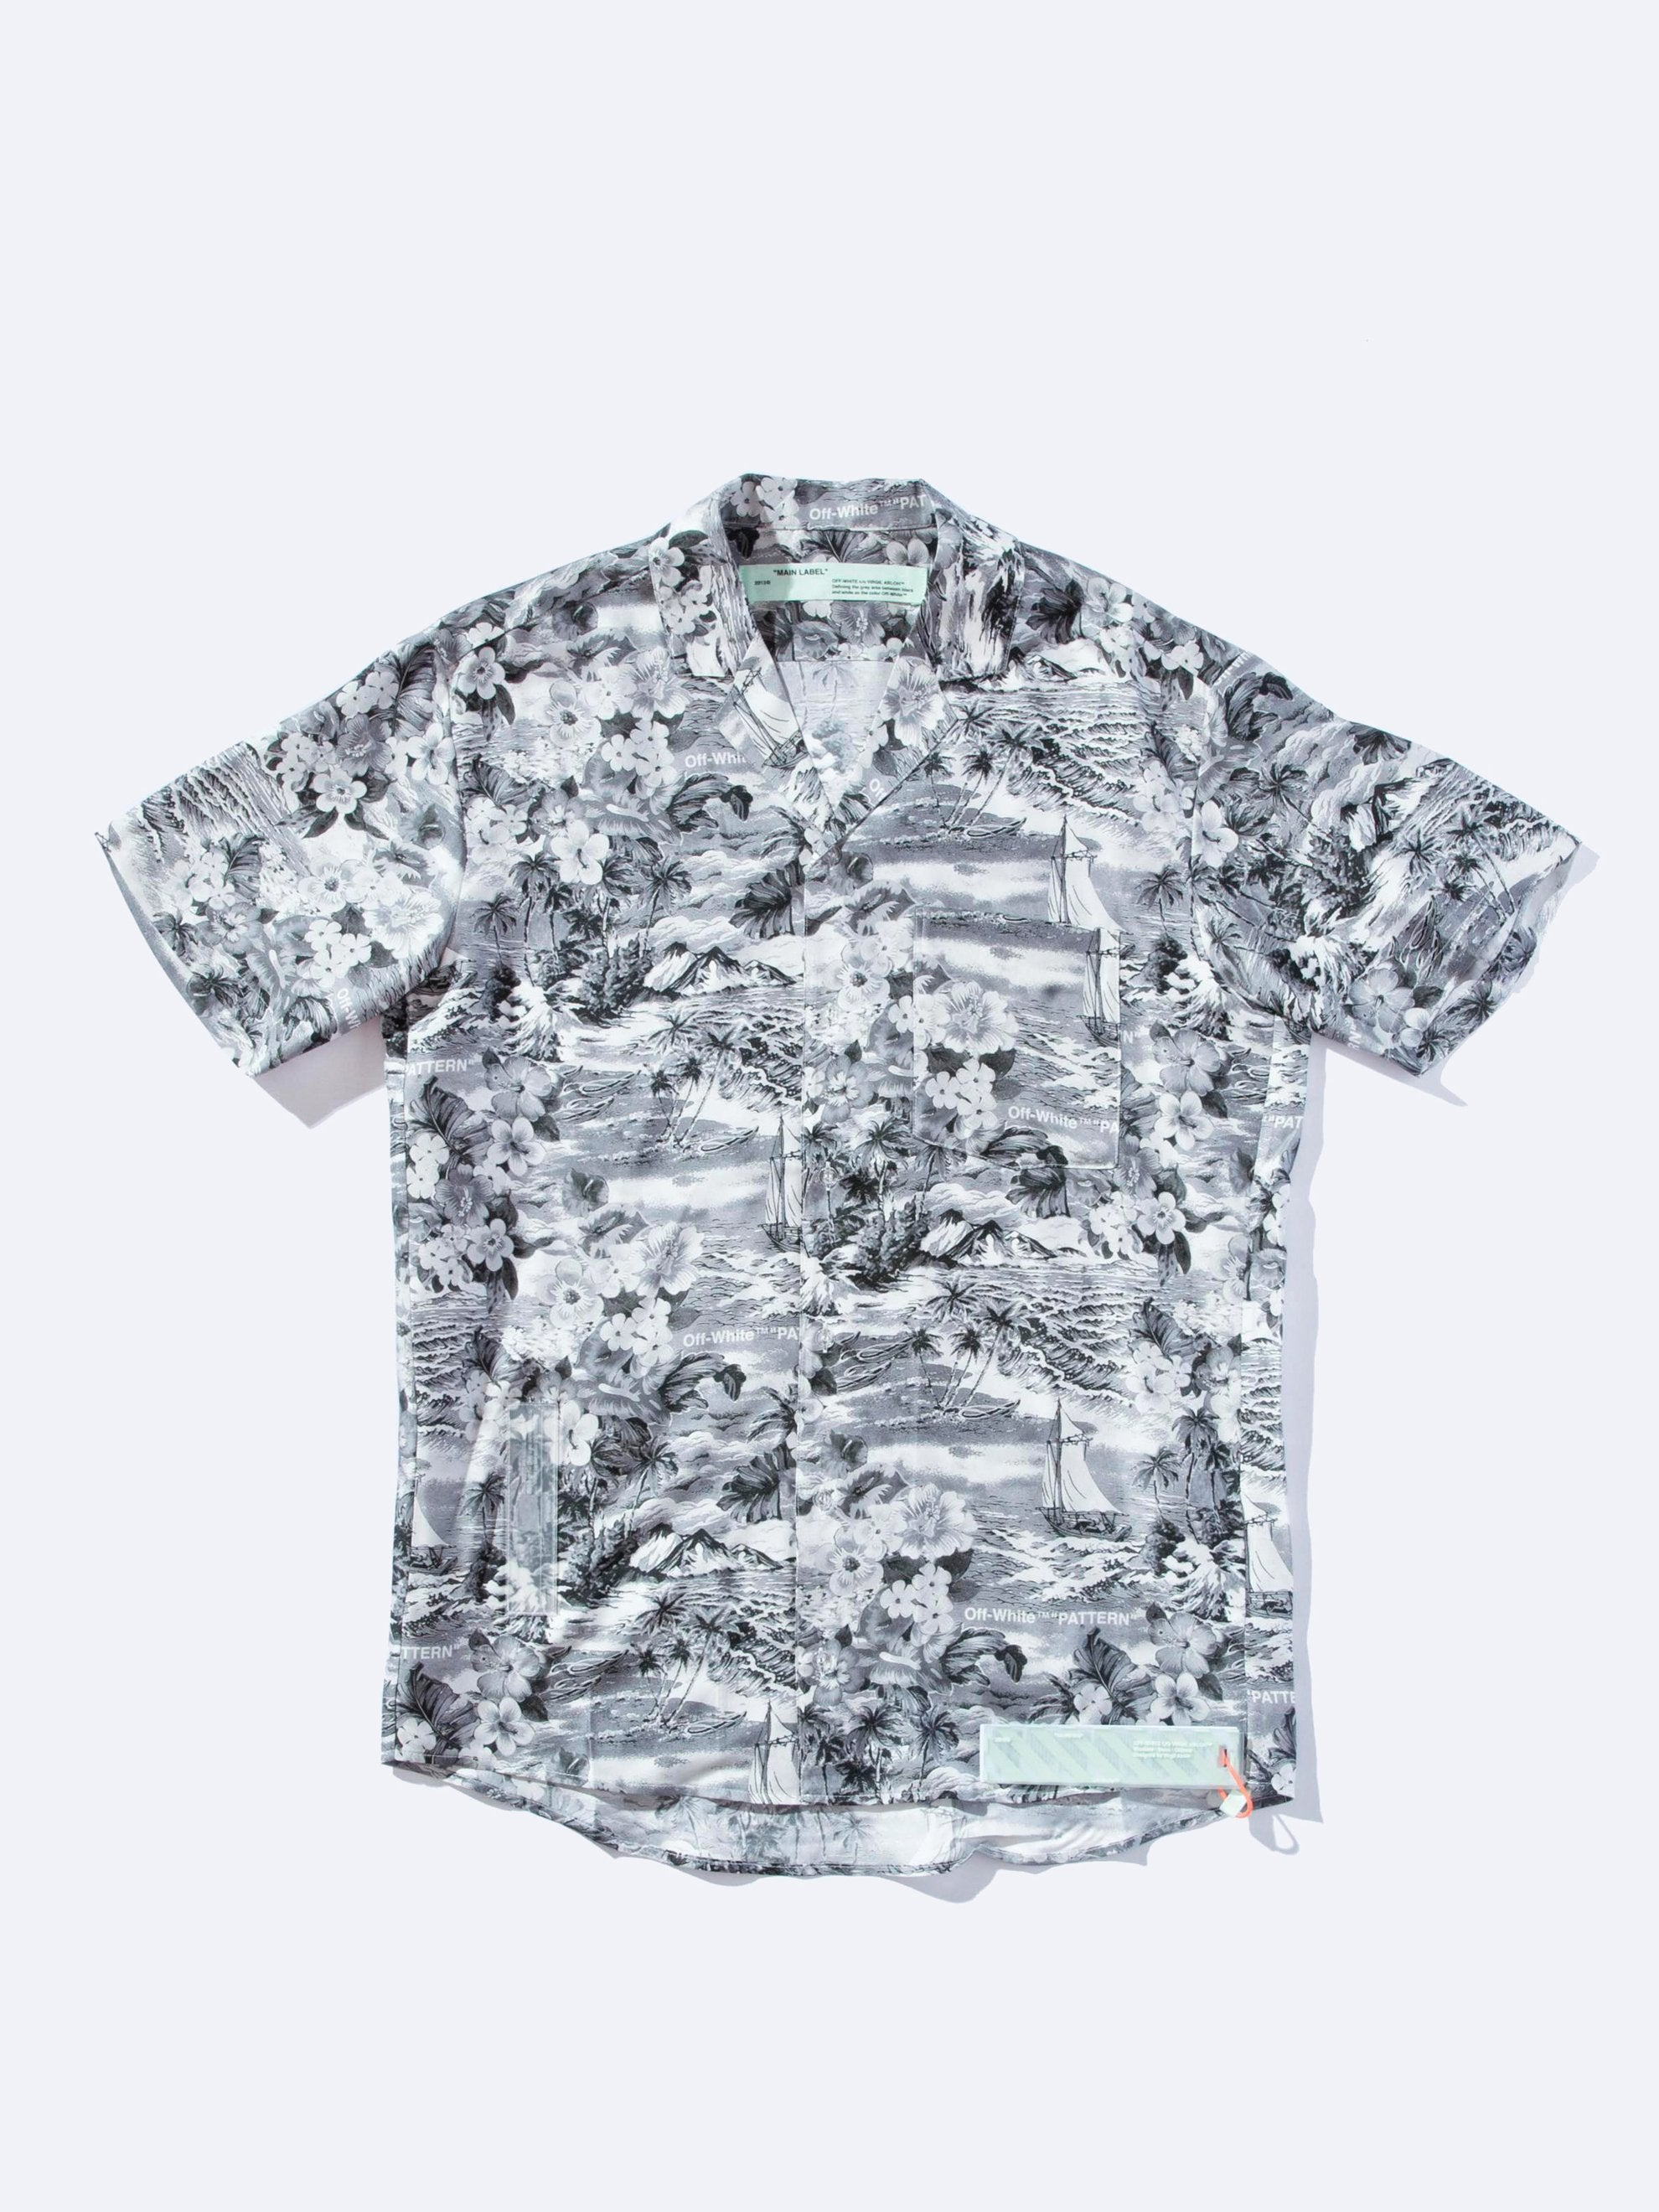 All Over/No Color Black & White Hawaiian Shirt 1